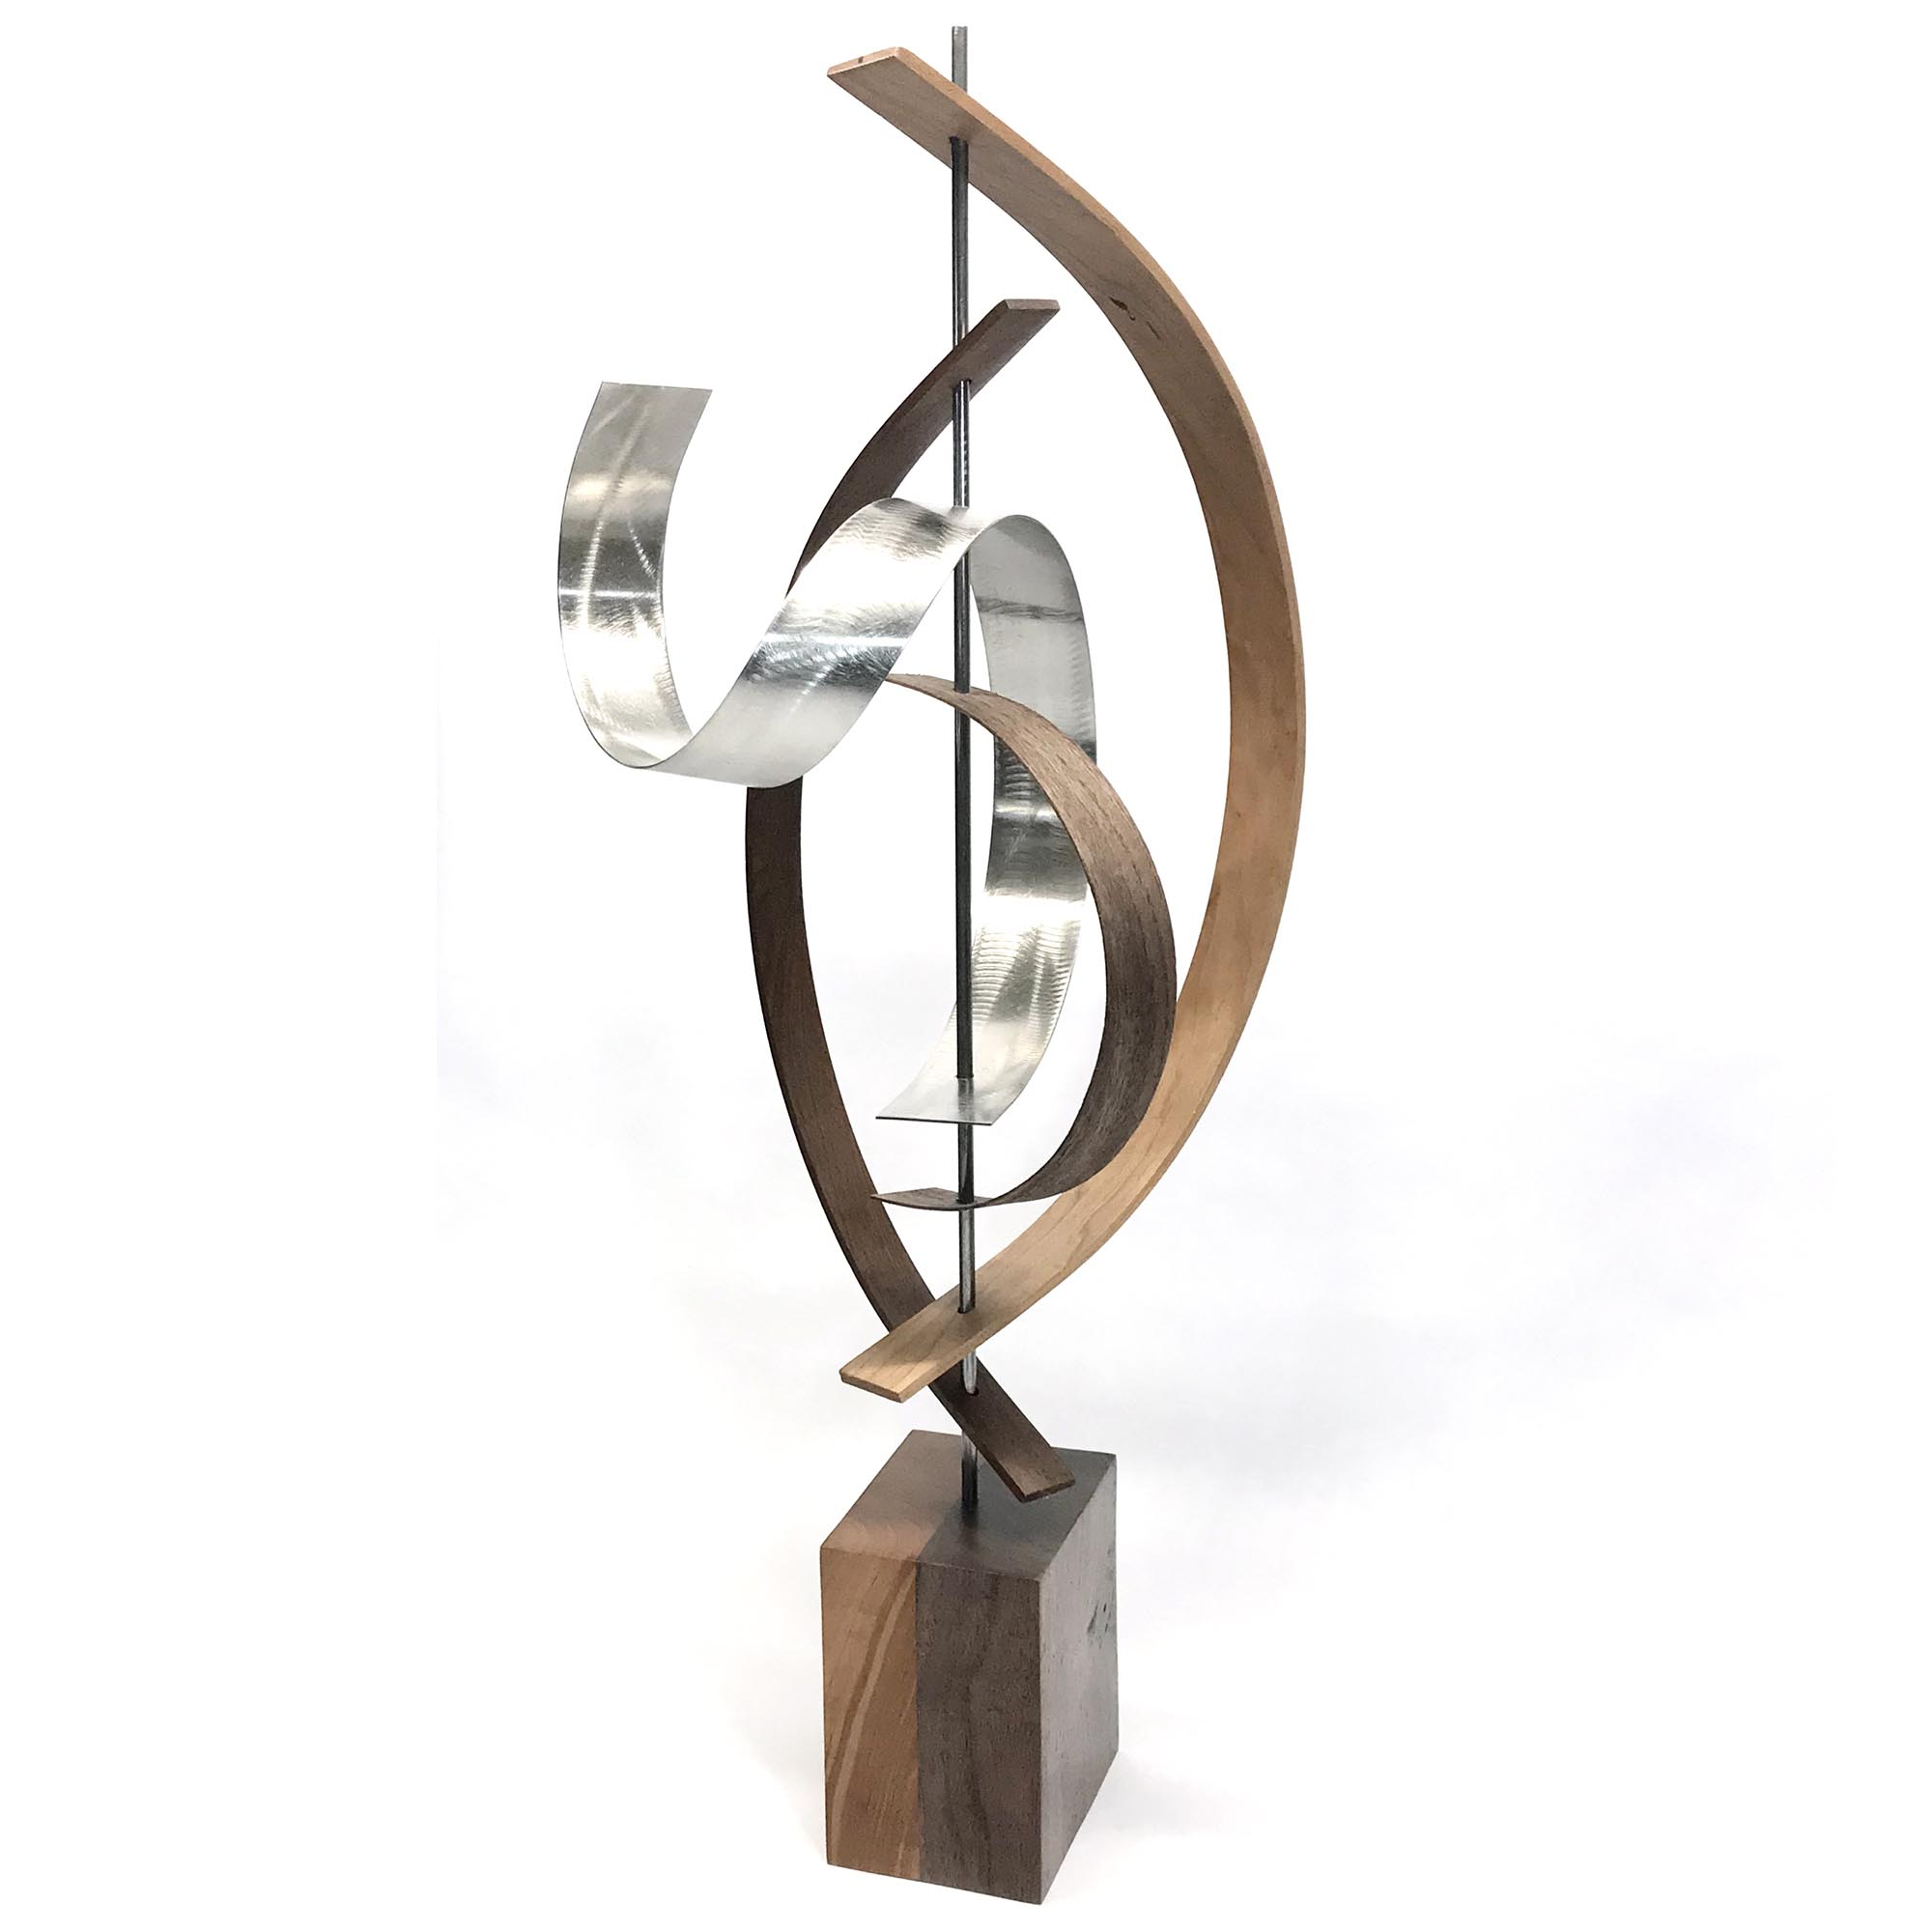 Jackson Wright 'Lift' 10in x 29in Contemporary Style Modern Wood Sculpture